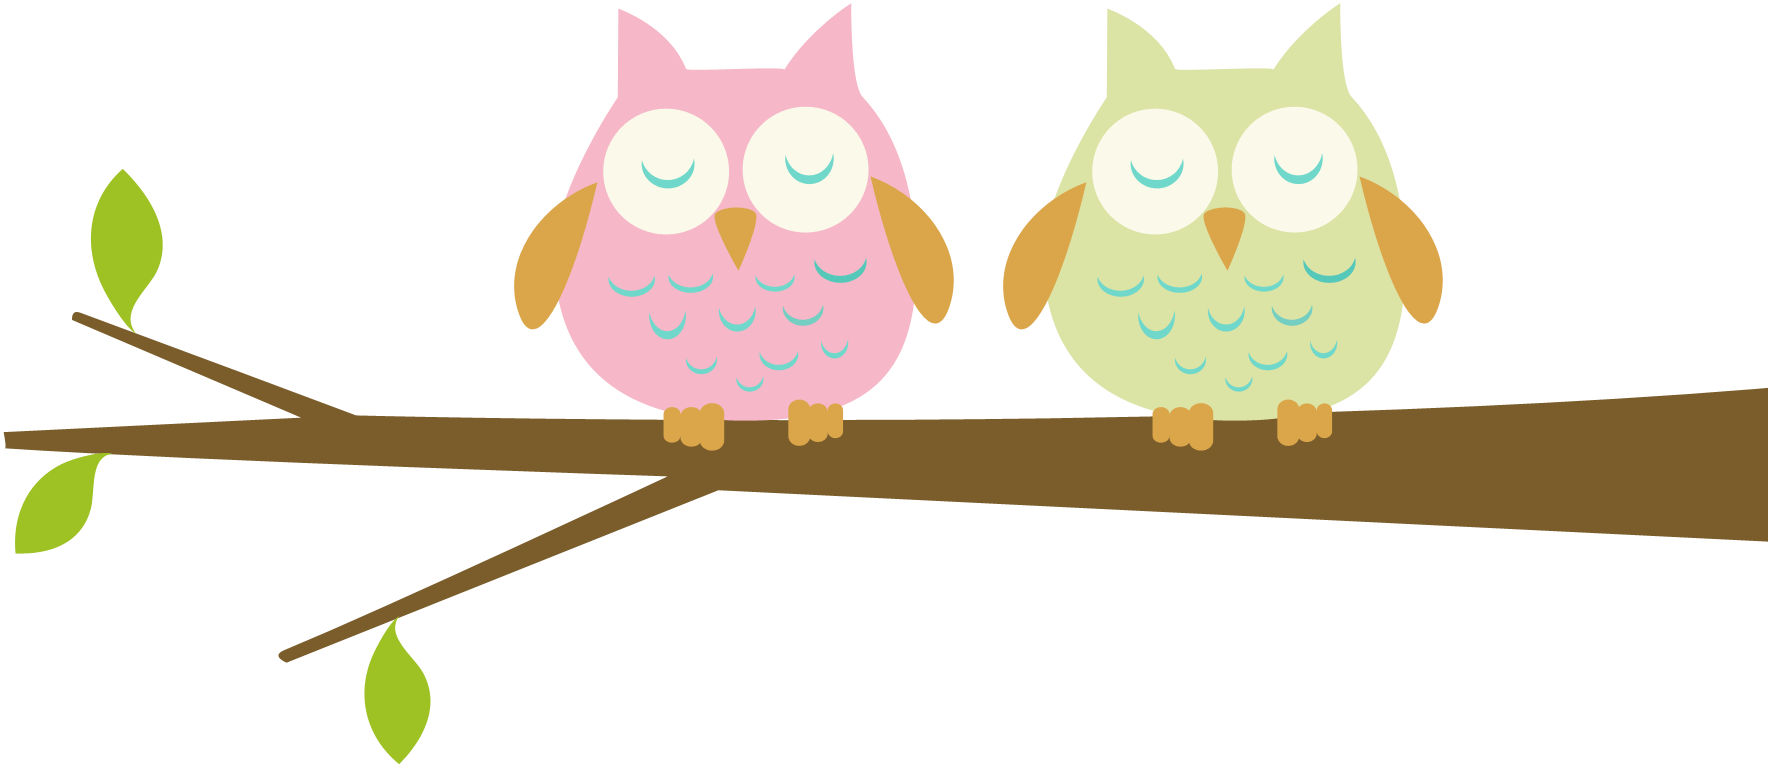 Sleepy owl and crescent moon clipart vector transparent download Free Sleepy Couple Cliparts, Download Free Clip Art, Free ... vector transparent download